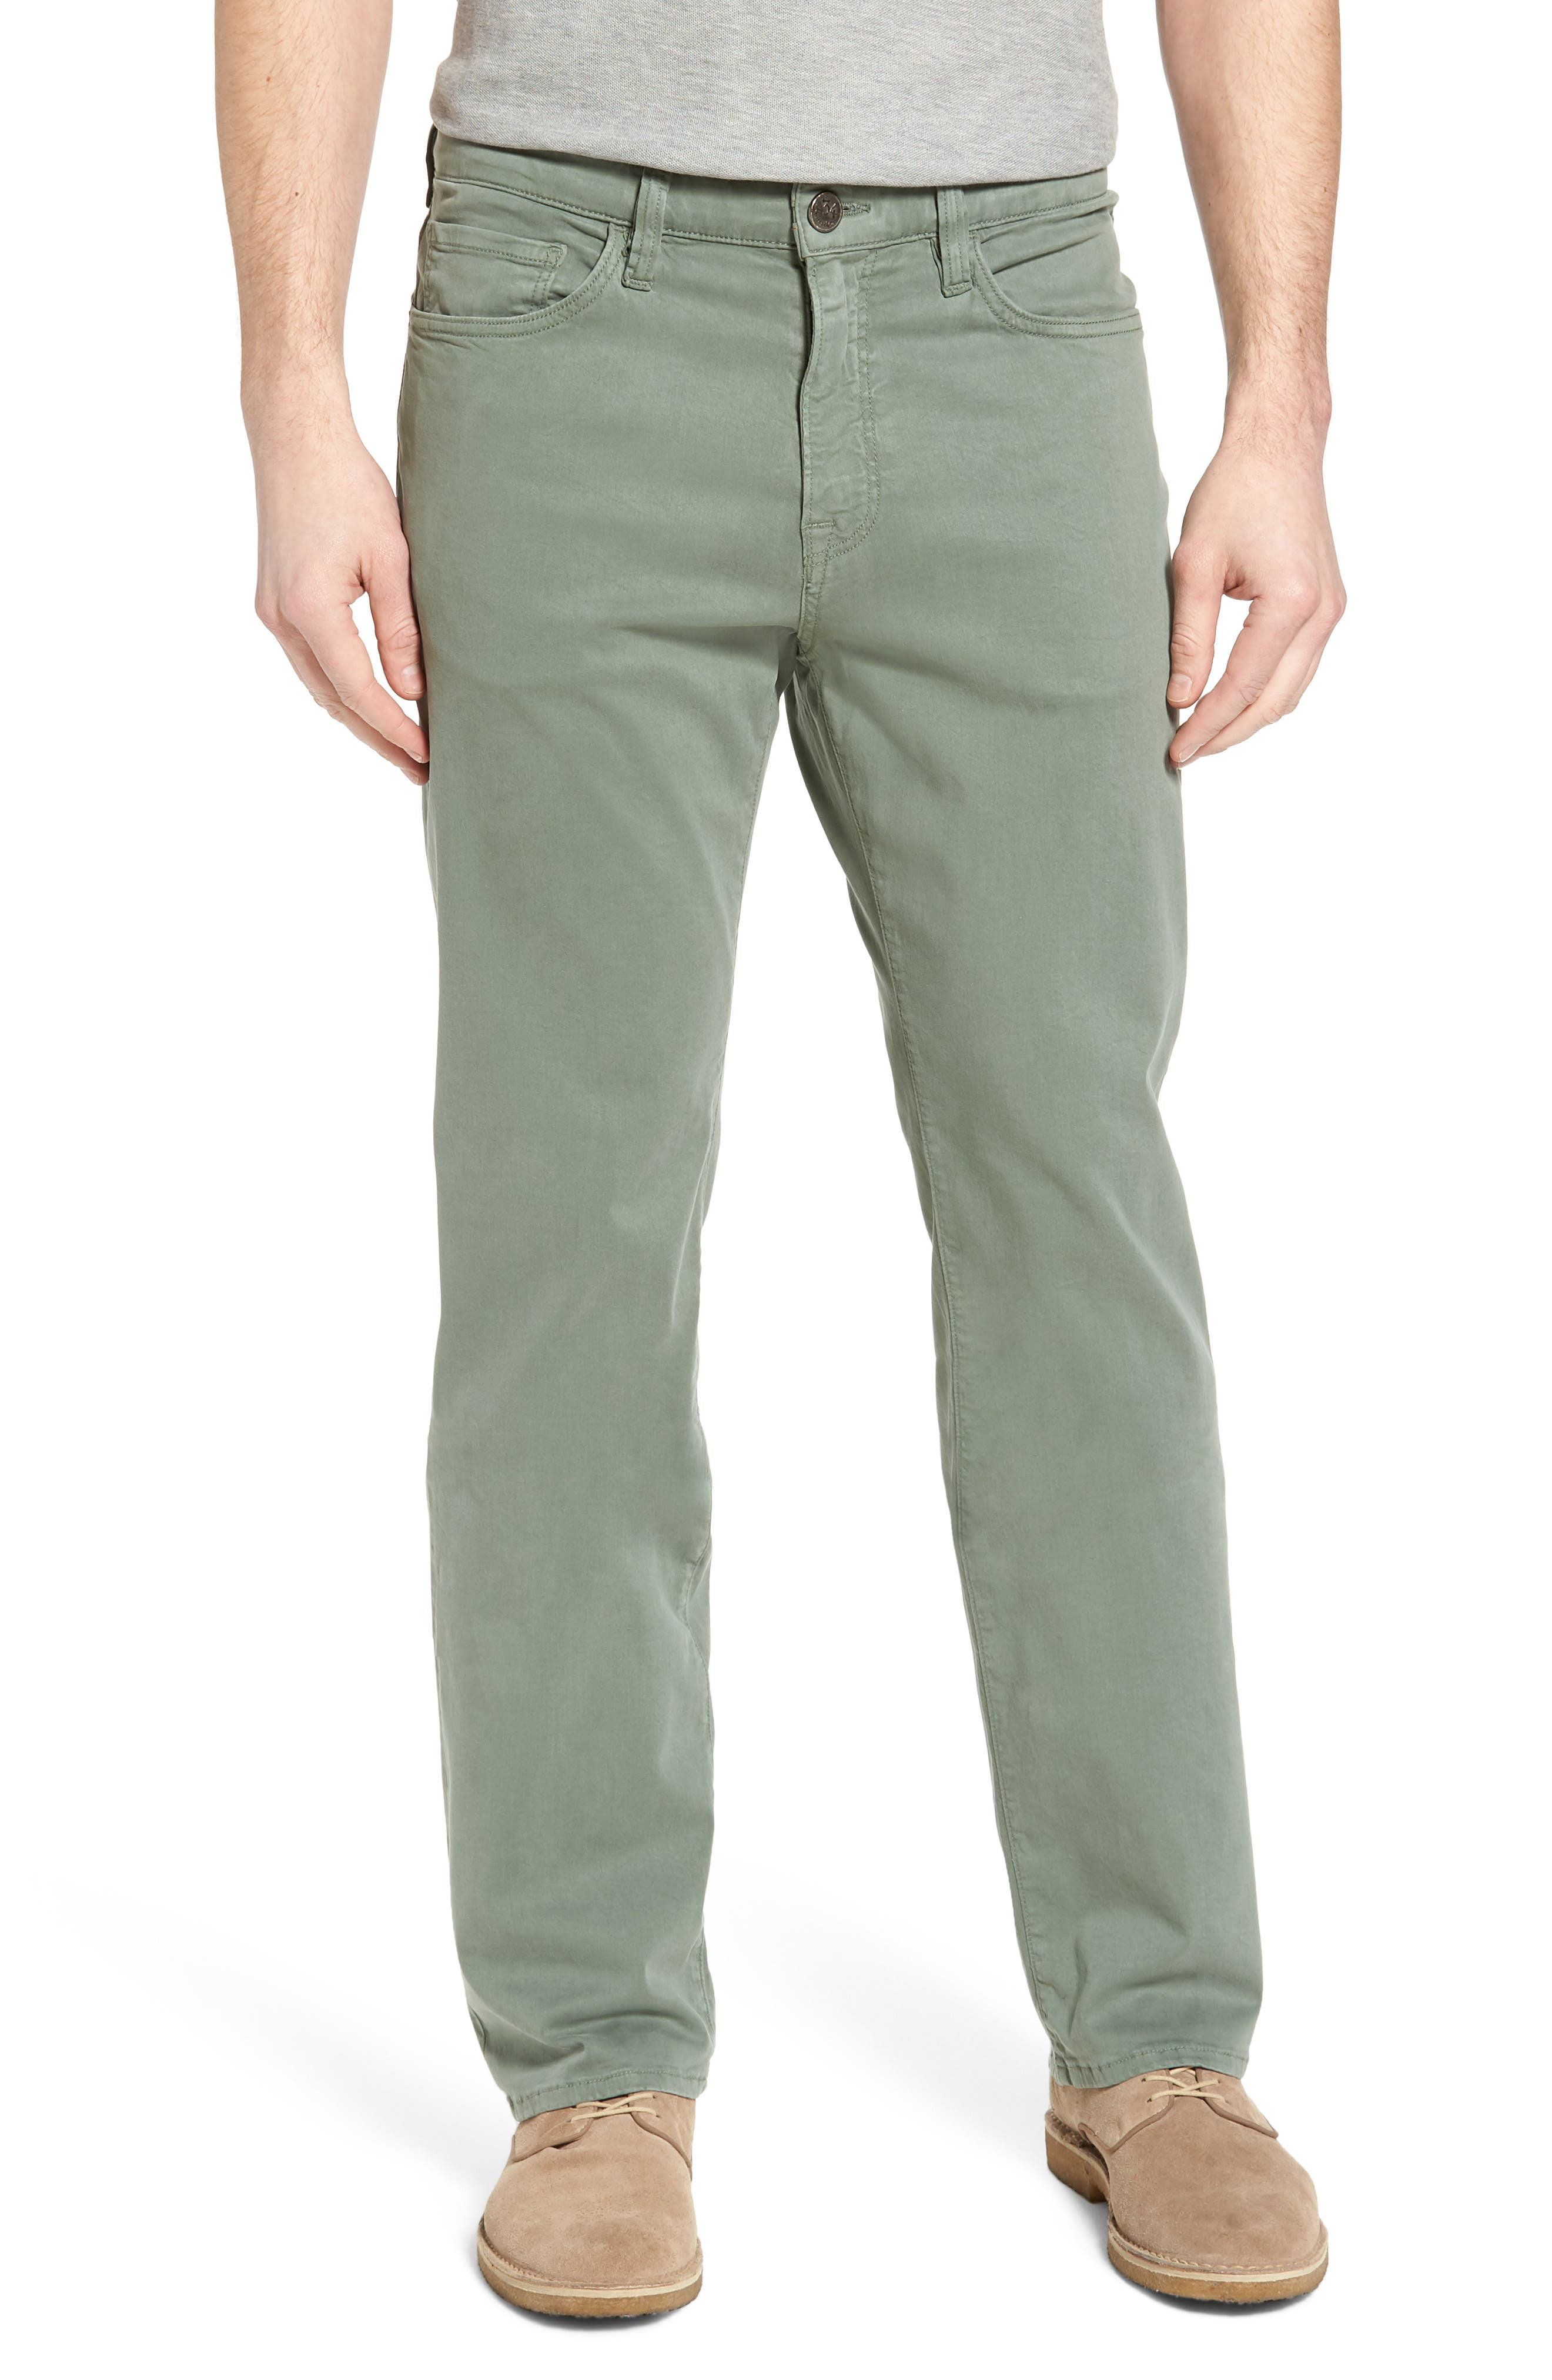 34 HERITAGE Charisma Relaxed Fit Twill Pants, Main, color, MOSS TWILL